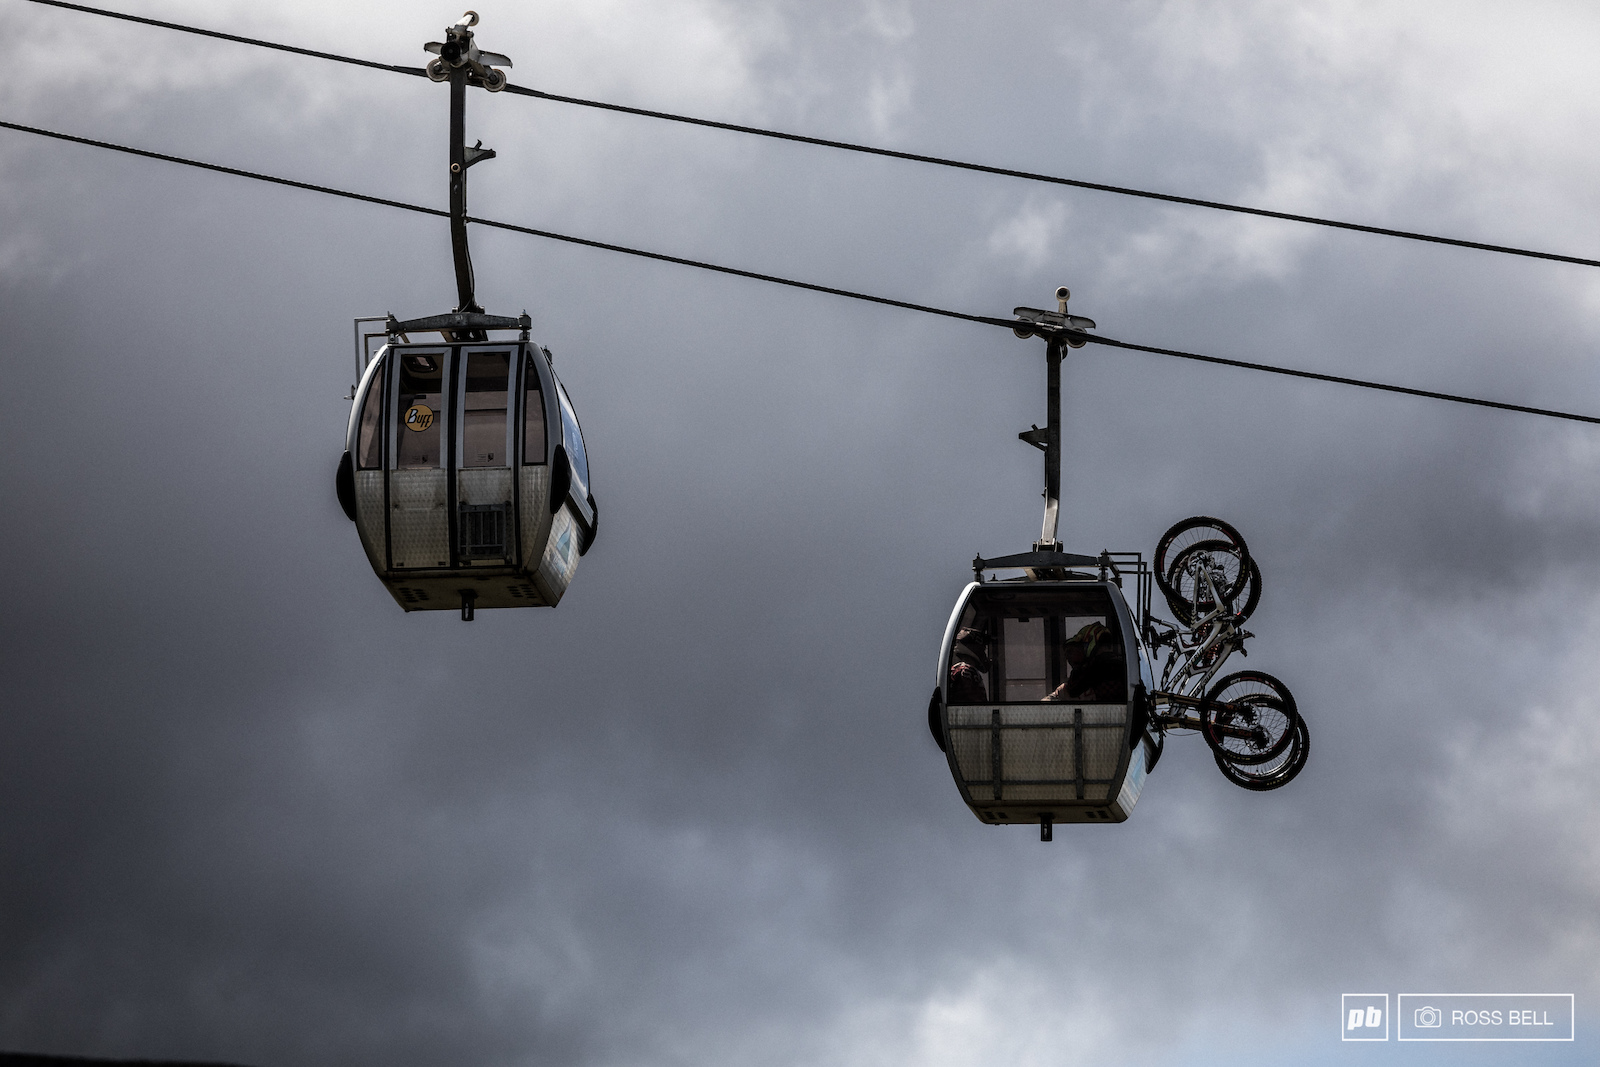 The Syndicate and Loic Bruni share a gondola up together.